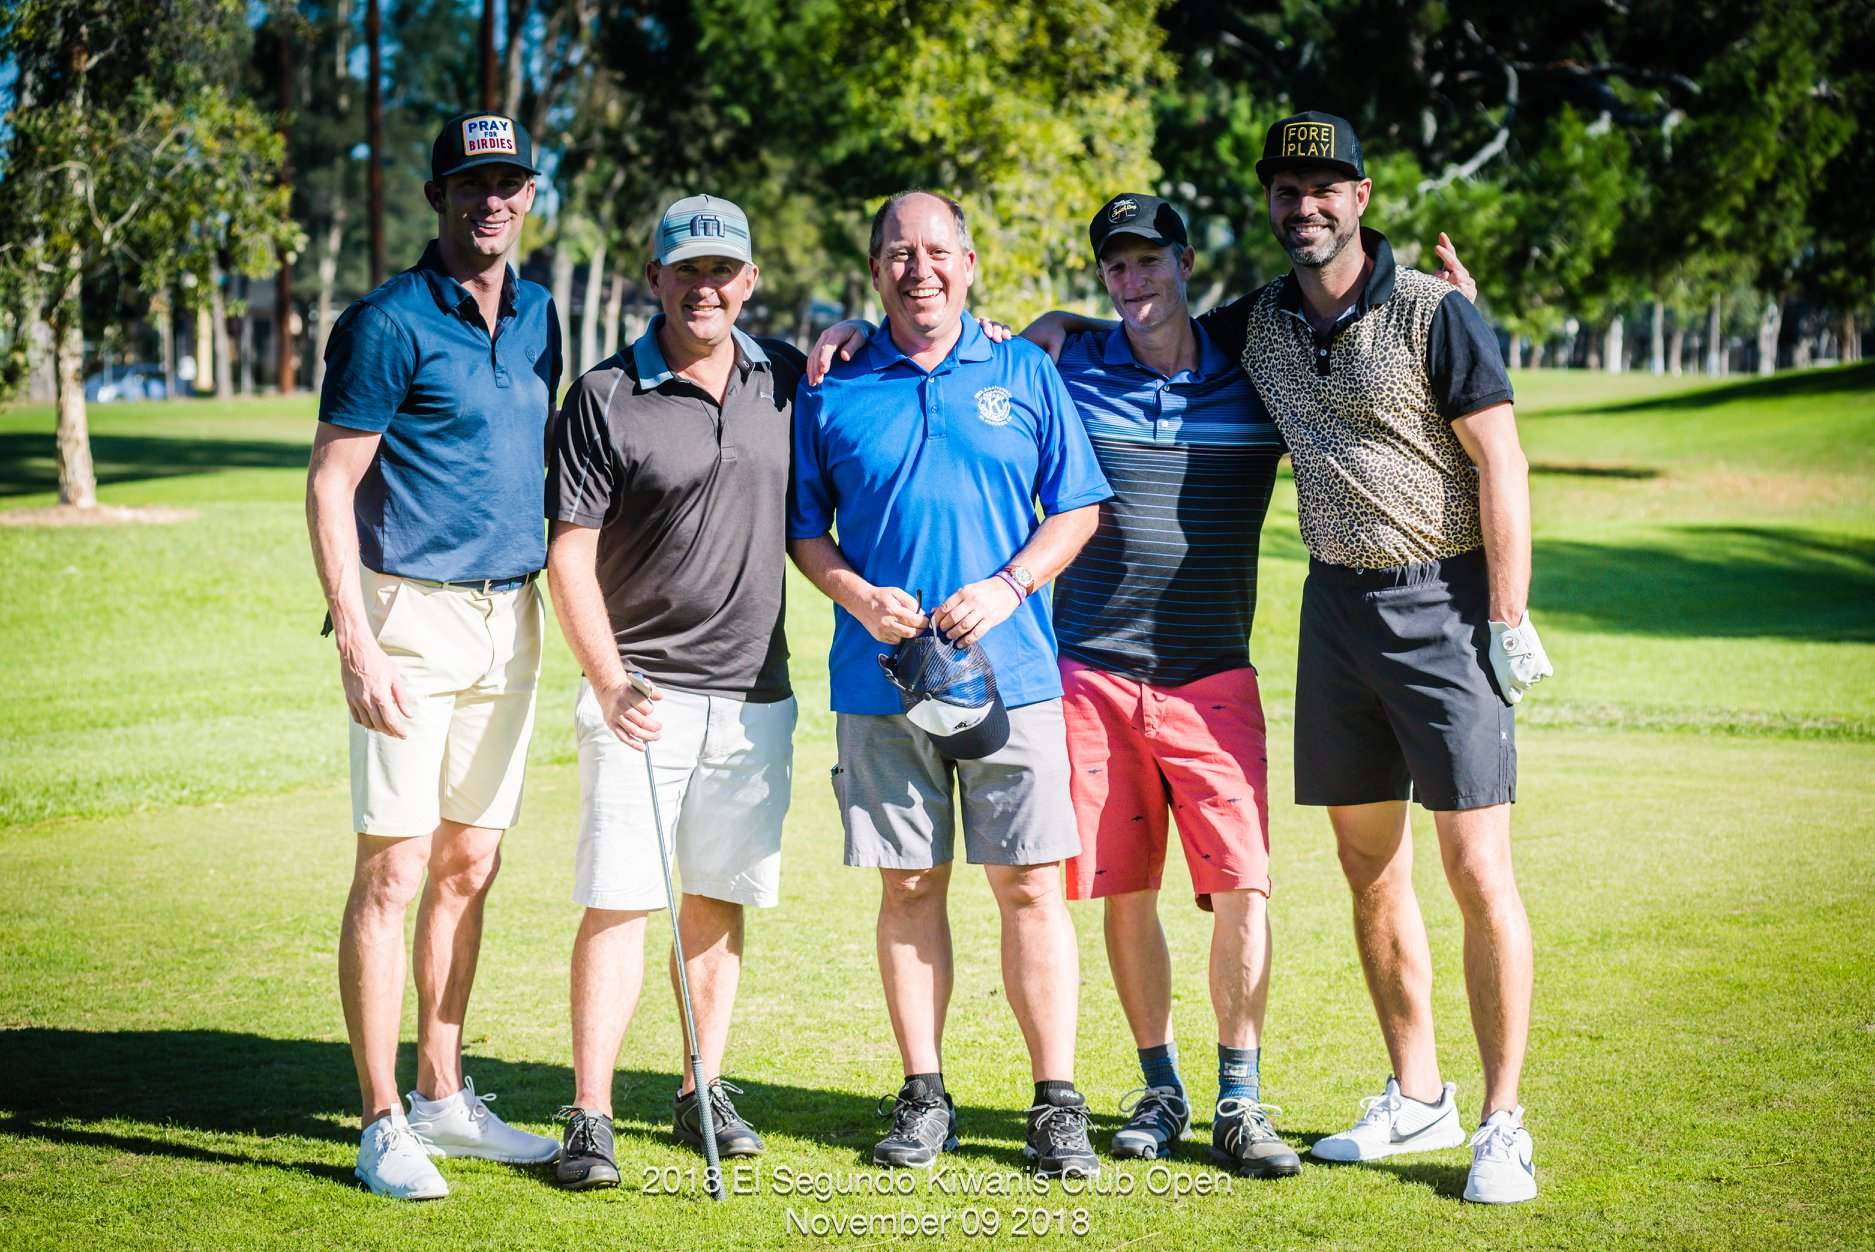 Kiwanis Cup Golf Tournament